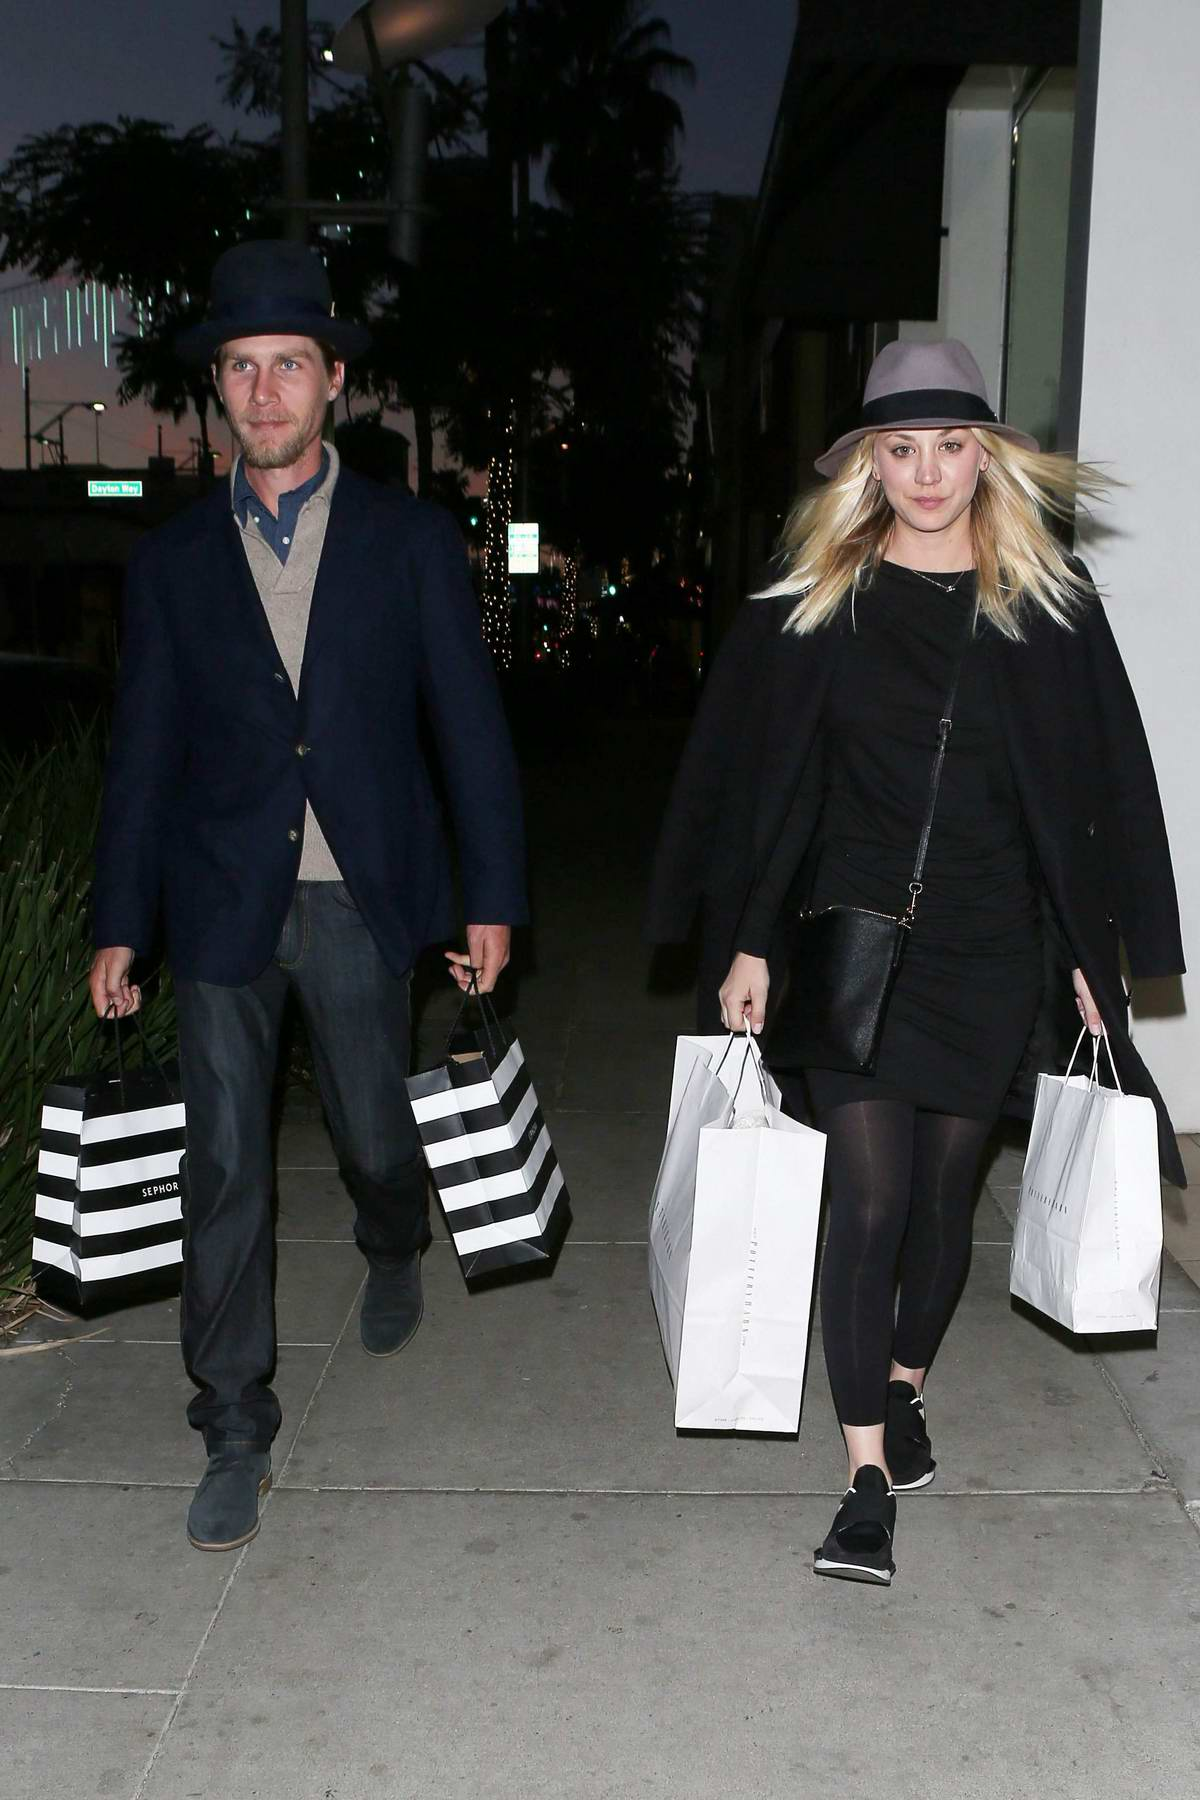 Kaley Cuoco and fiance Karl Cook out on holiday shopping in Beverly Hills, Los Angeles